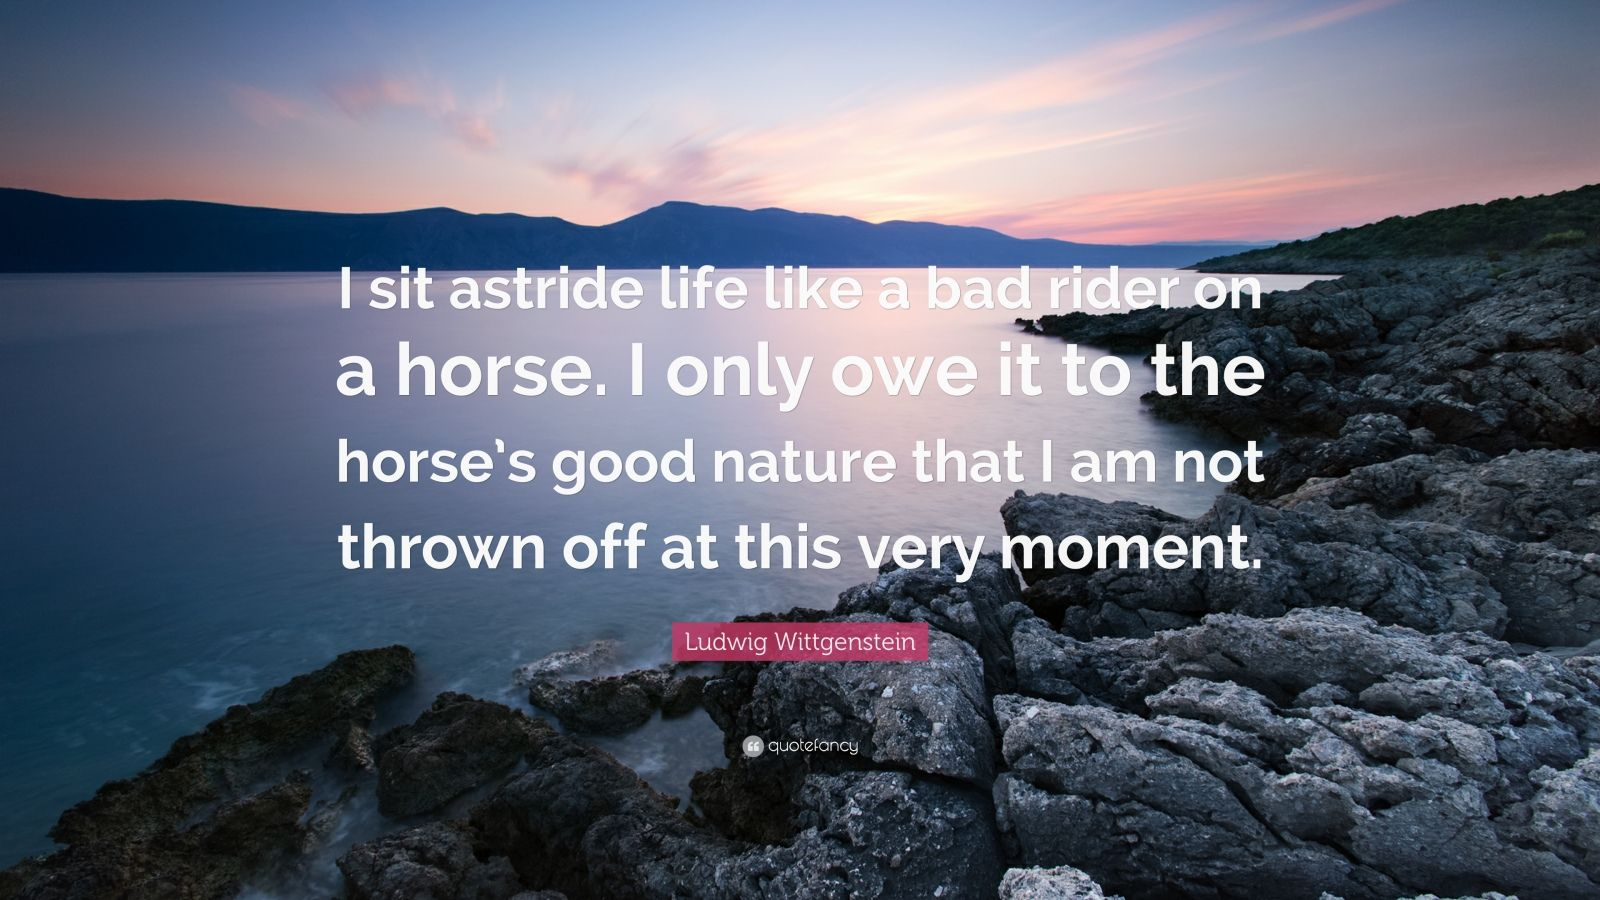 """Ludwig Wittgenstein Quote: """"I sit astride life like a bad rider on a horse. I only owe it to the horse's good nature that I am not thrown off at this very moment."""""""